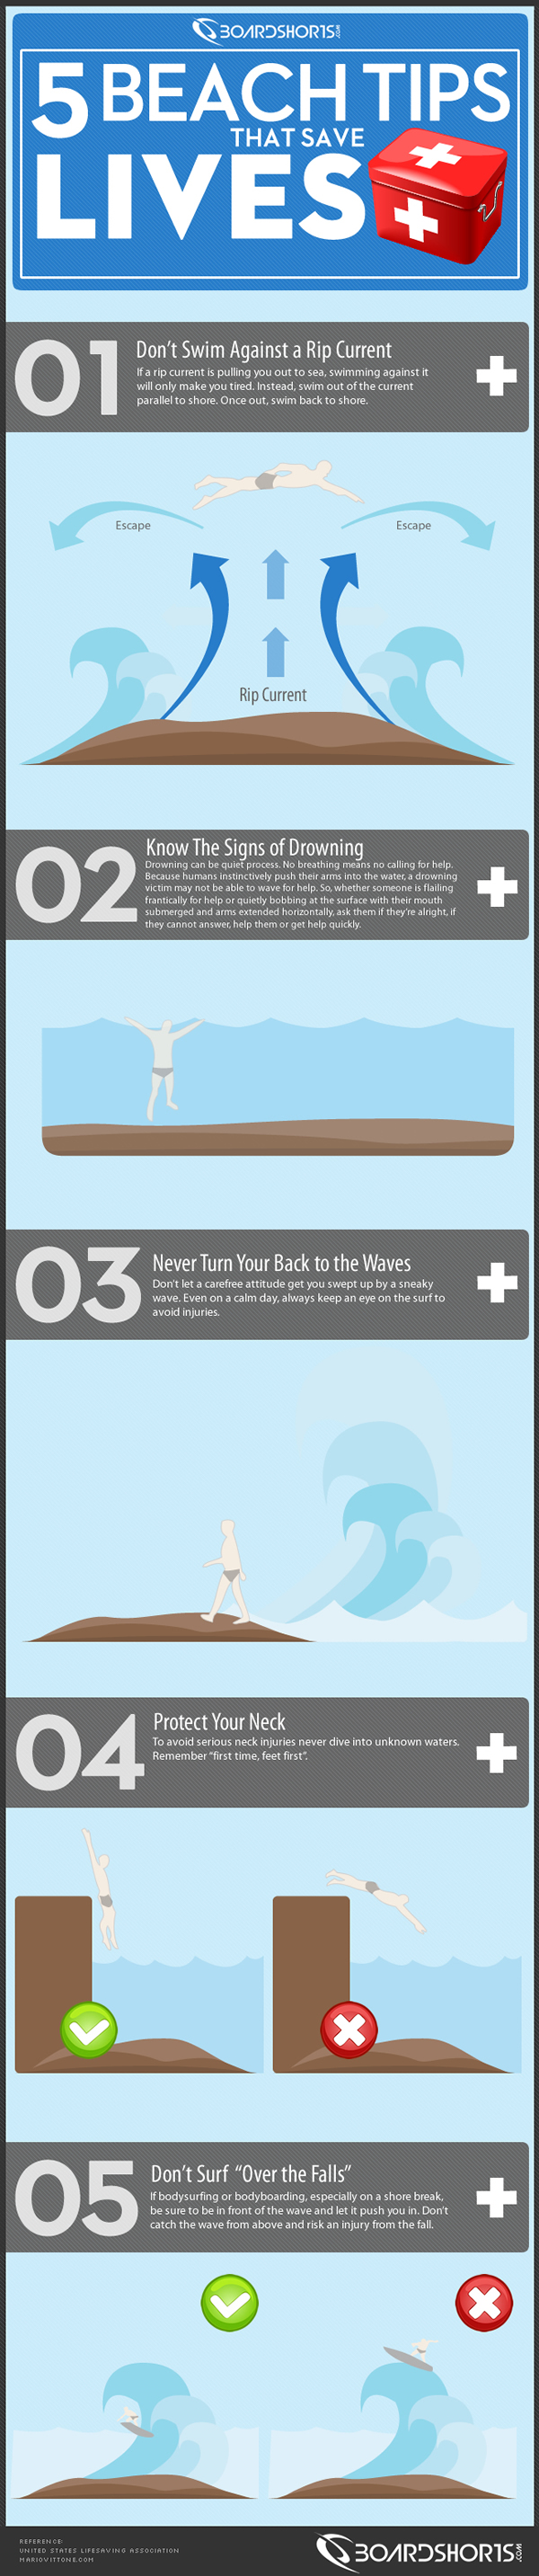 5 Beach Tips That Save Lives Infographic